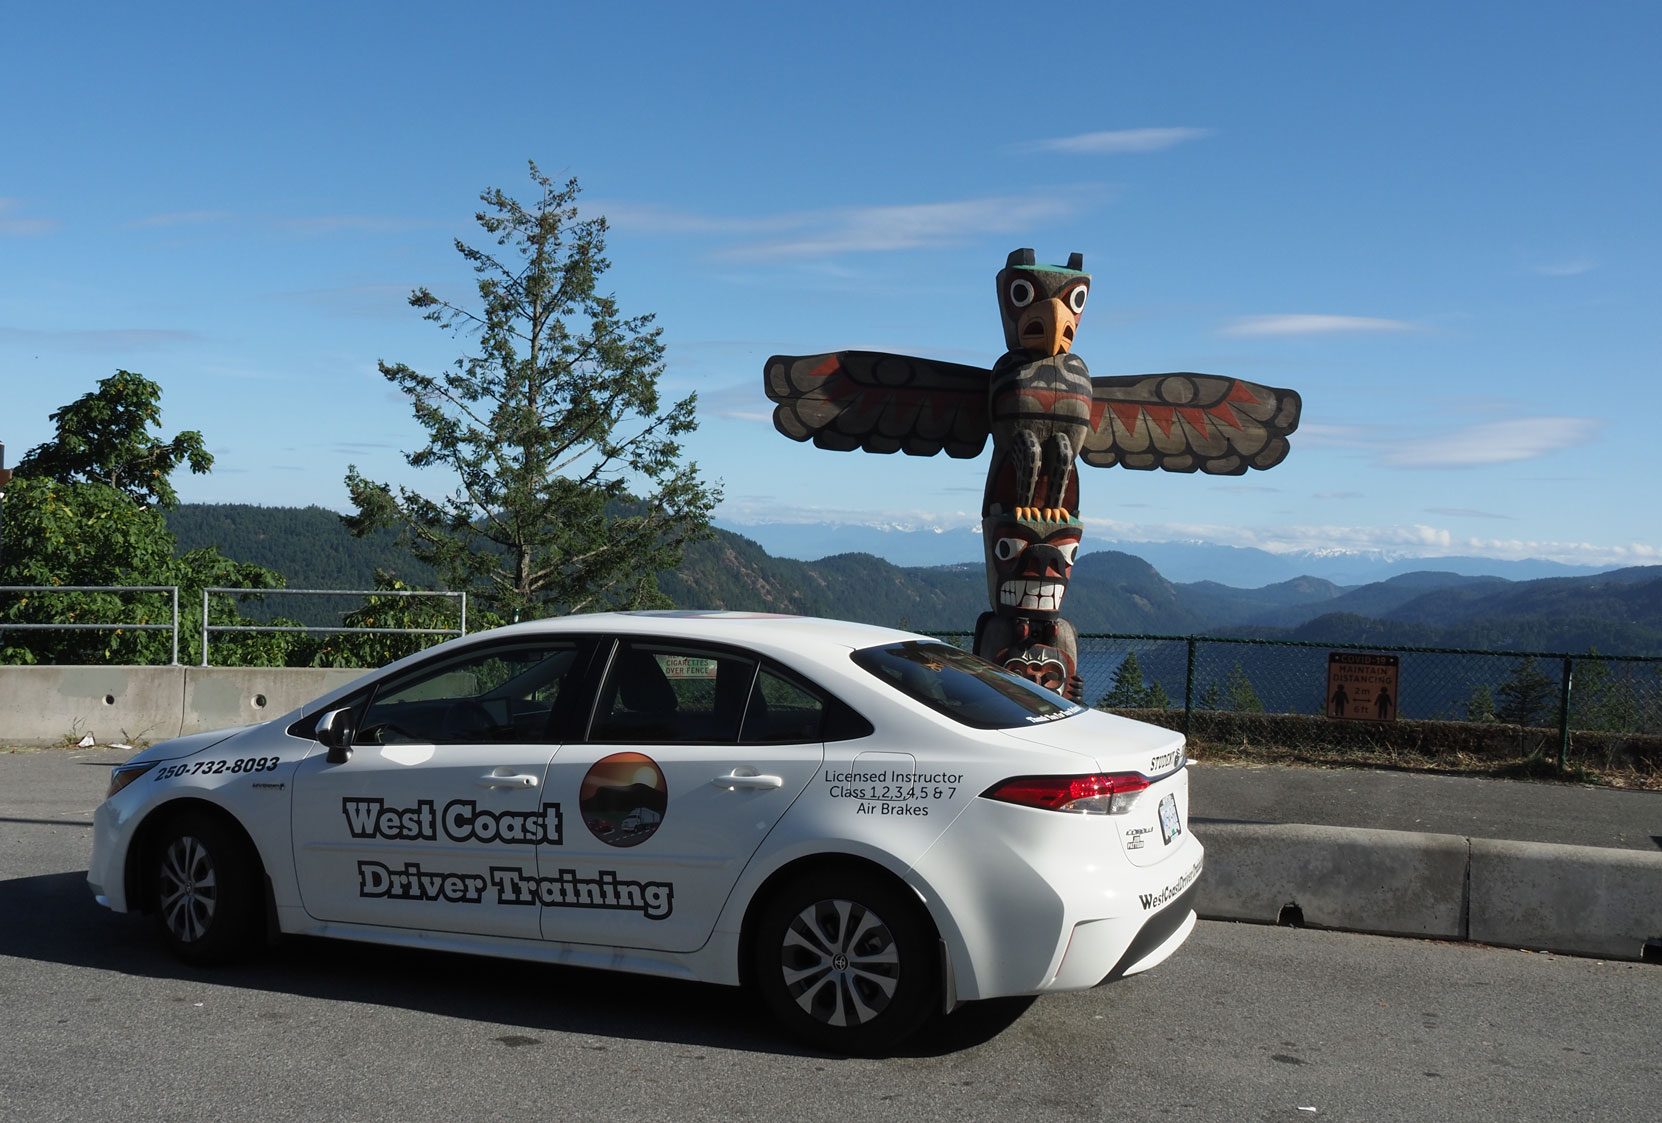 Our 2021 Toyota Corolla Hybrid at the Malahat Summit Viewpoint. (photo: West Coast Driver Training)